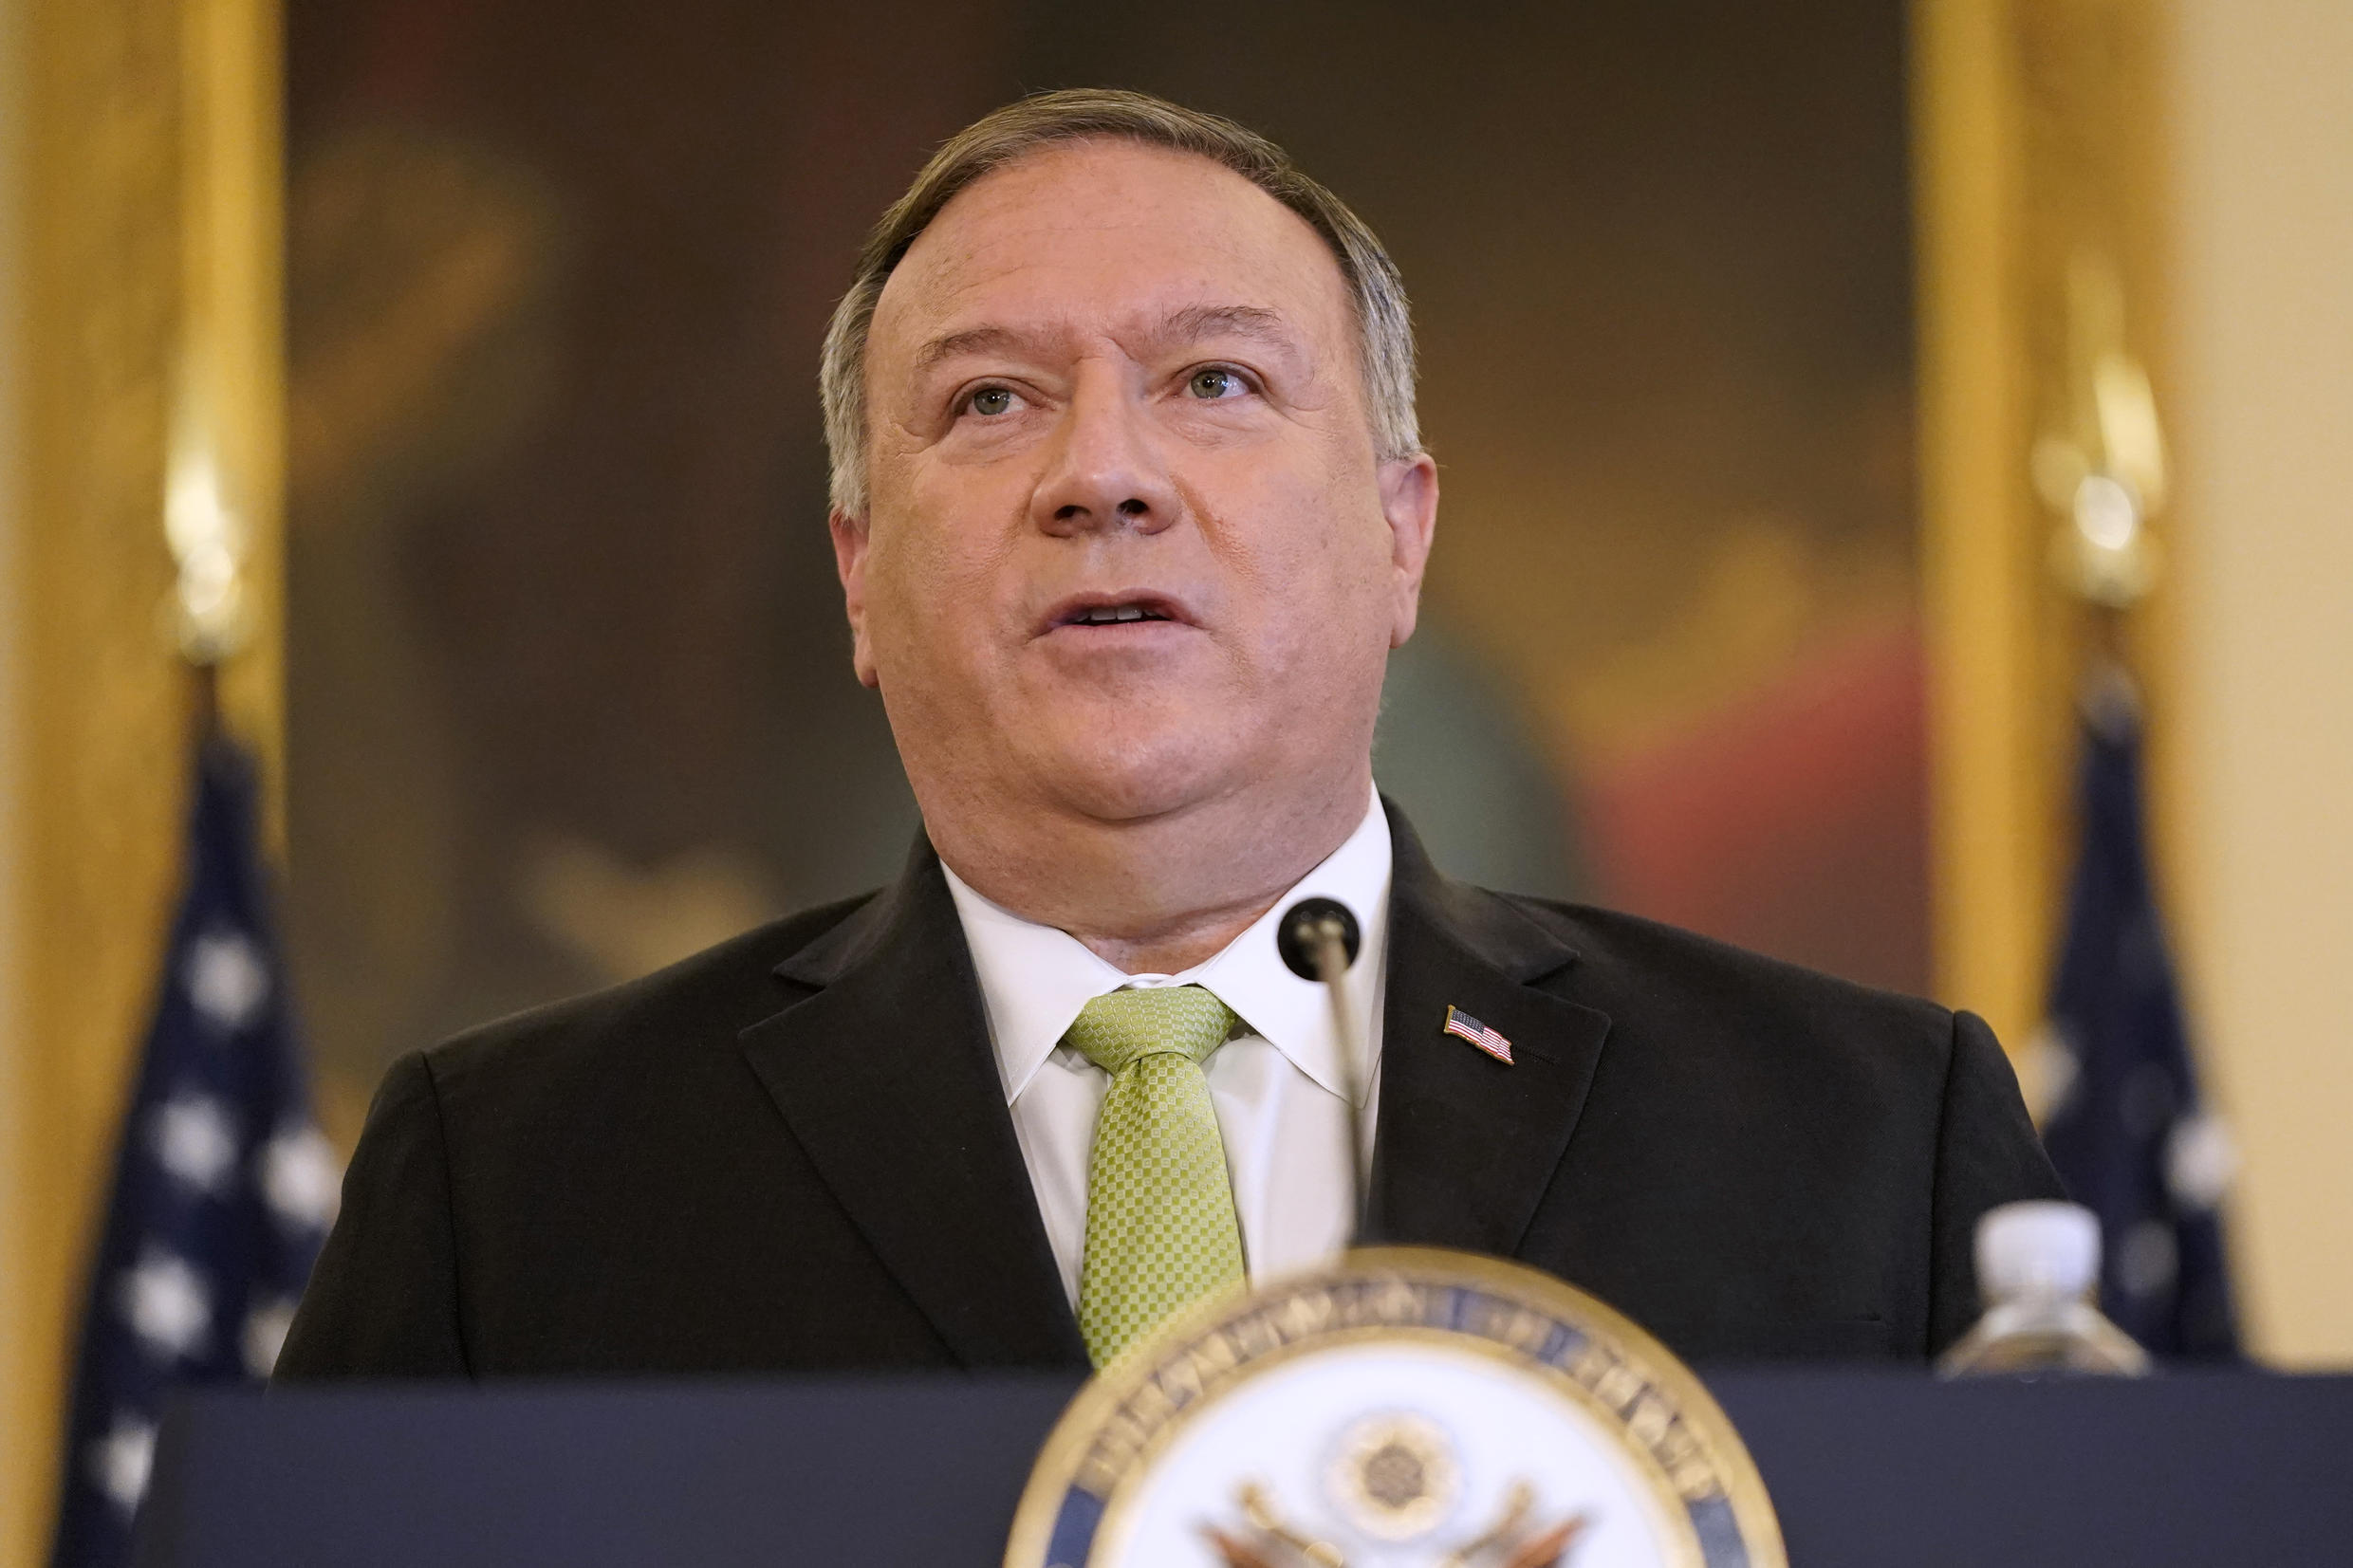 US Secretary of State Mike Pompeo, pictured in September 2020, will travel to Tokyo where he will meet with foreign ministers of Australia, India and Japan